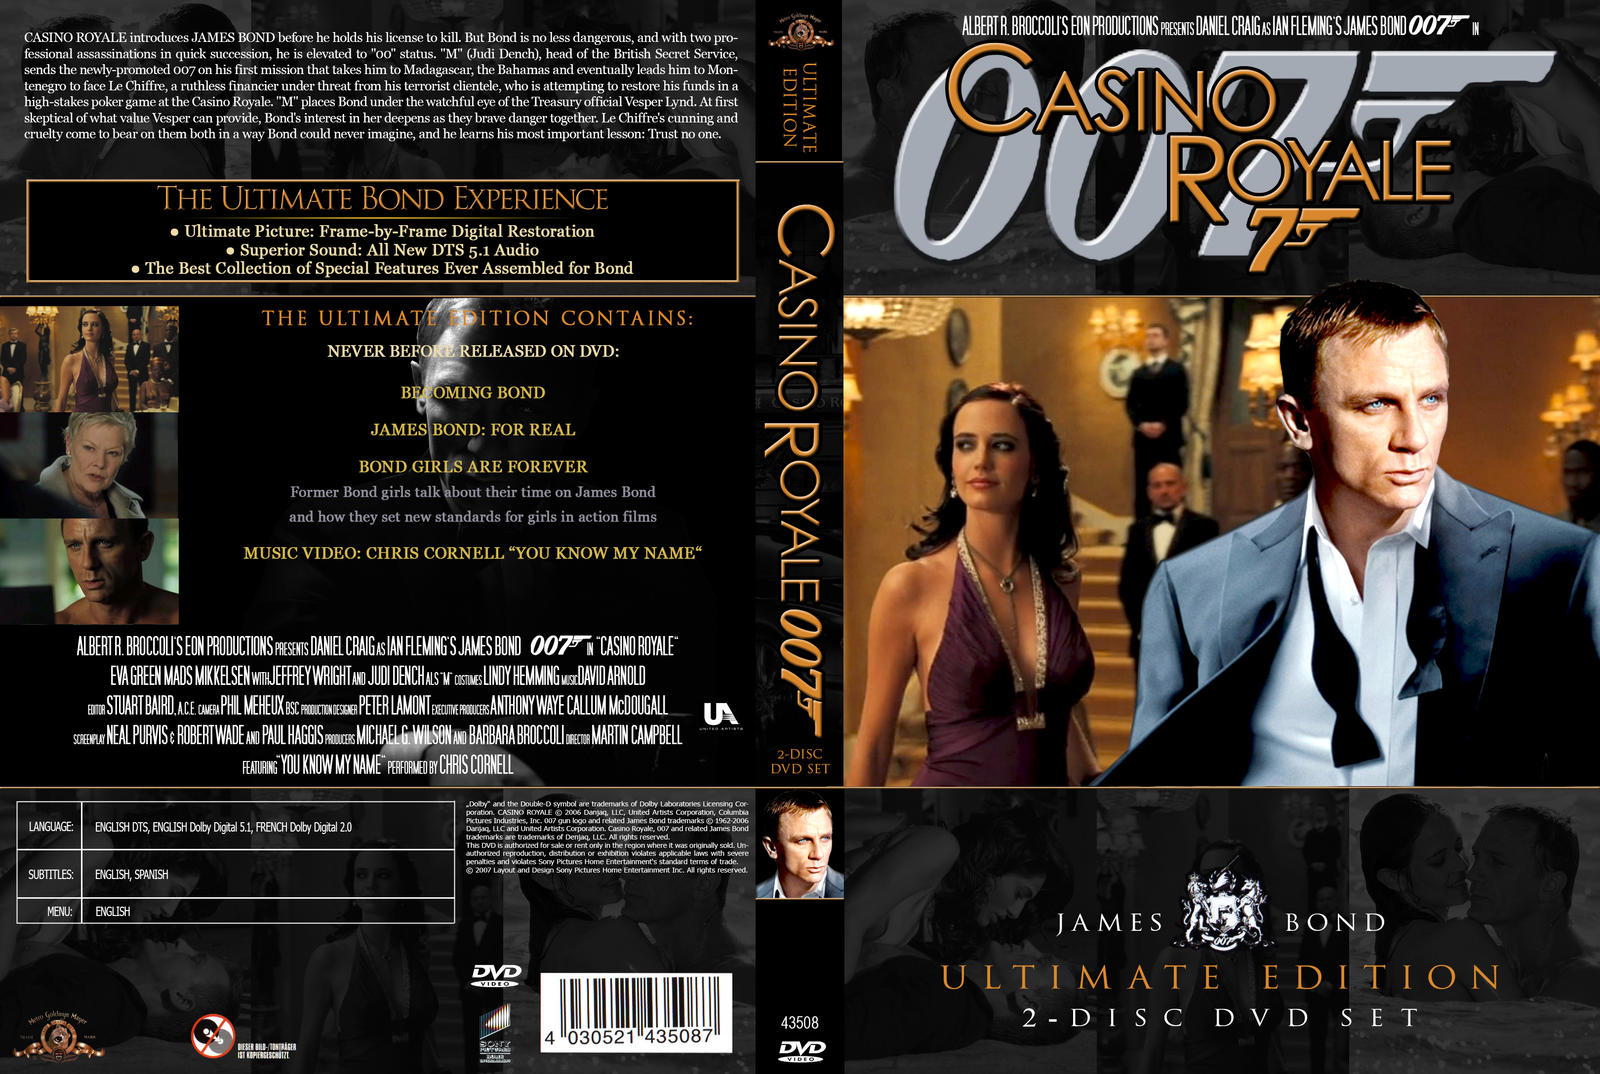 Oo7 james bond casino royale harveys resort hotel casino